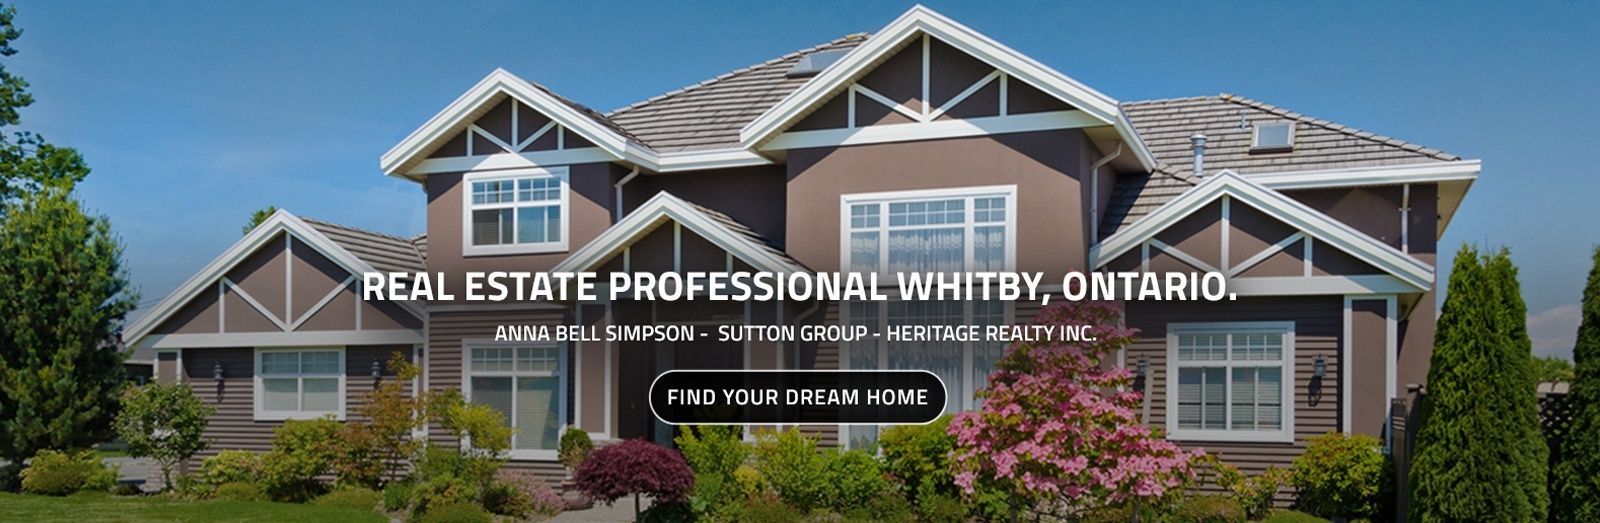 Professional Real Estate Agent Whitby, Ontario | Durham Real Estate